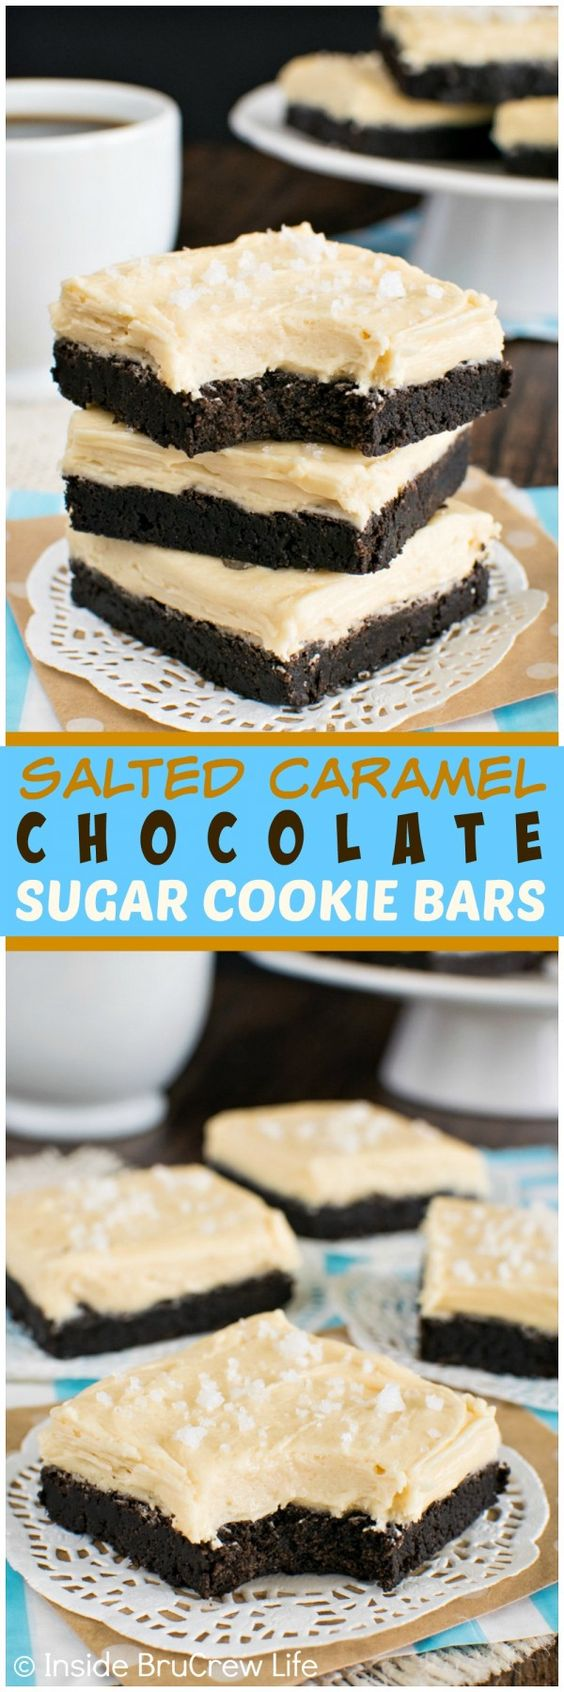 Caramel Chocolate Sugar Cookie Bars - these soft chocolate cookies ...